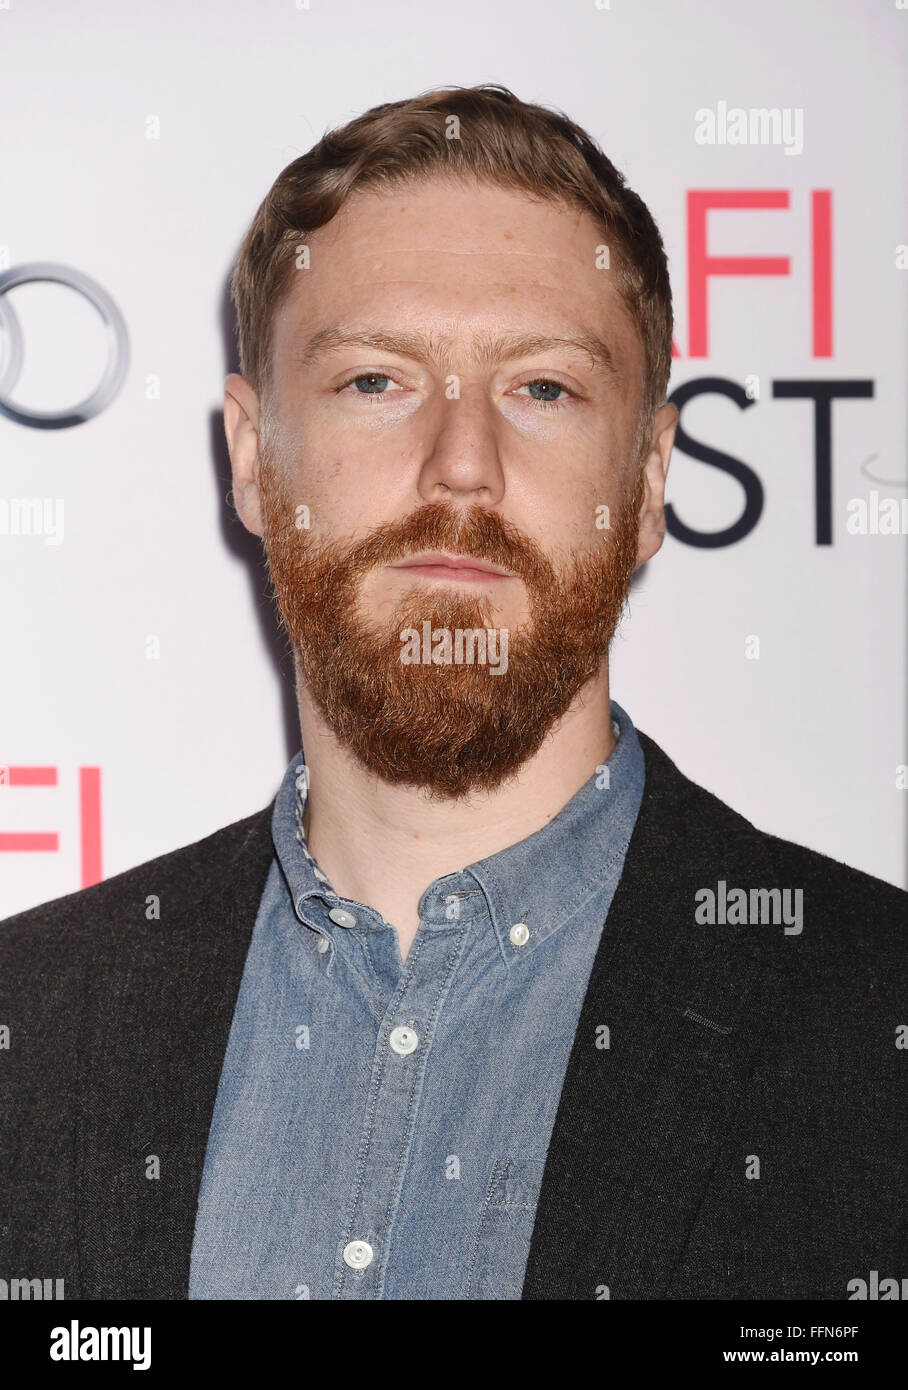 Producer Tristan Goligher arrives at the AFI FEST 2015 Presented by Audi Tribute to Charlotte Rampling and Tom Courtenay - Stock Image